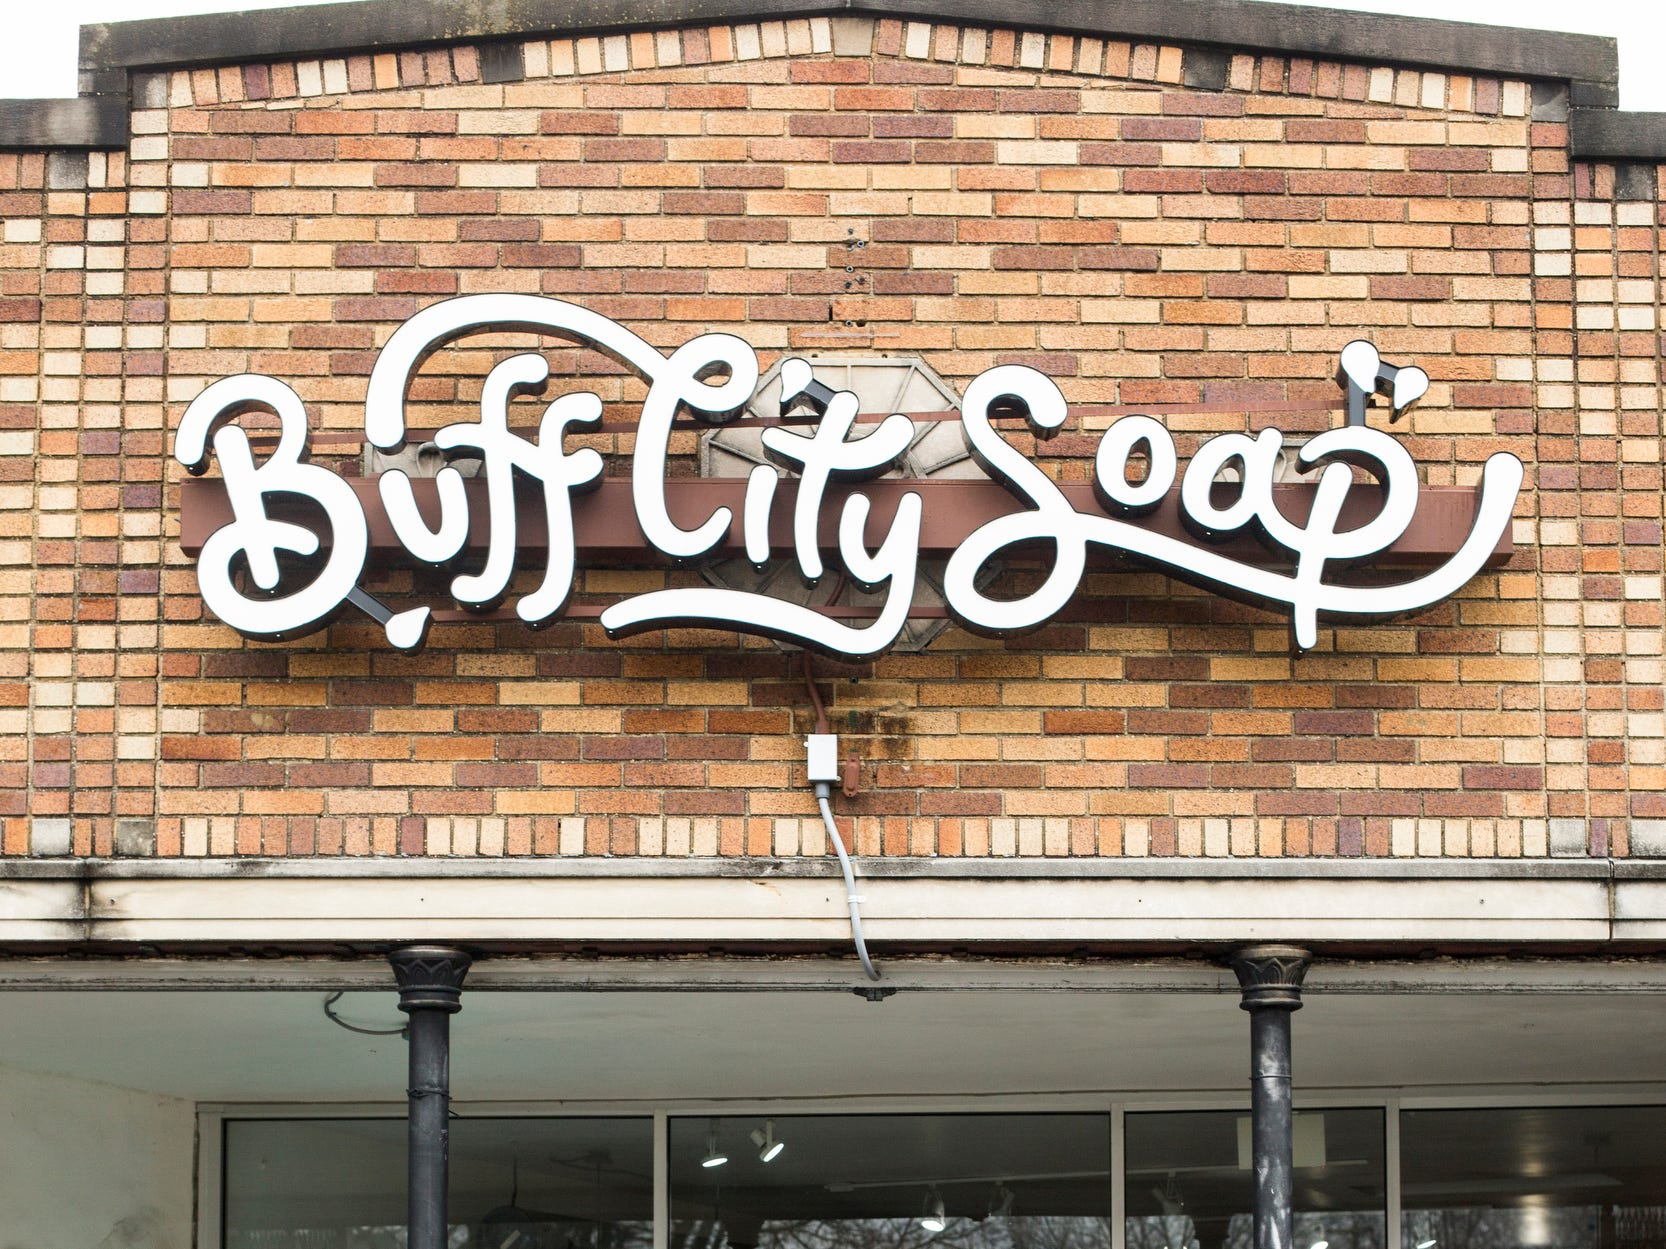 One of the Buff City Soap's locations is in Midtown Memphis in the Cooper-Young neighborhood. Buff City Soap offers a variety of soaps, bath bombs, scrubs and other bath and body products.